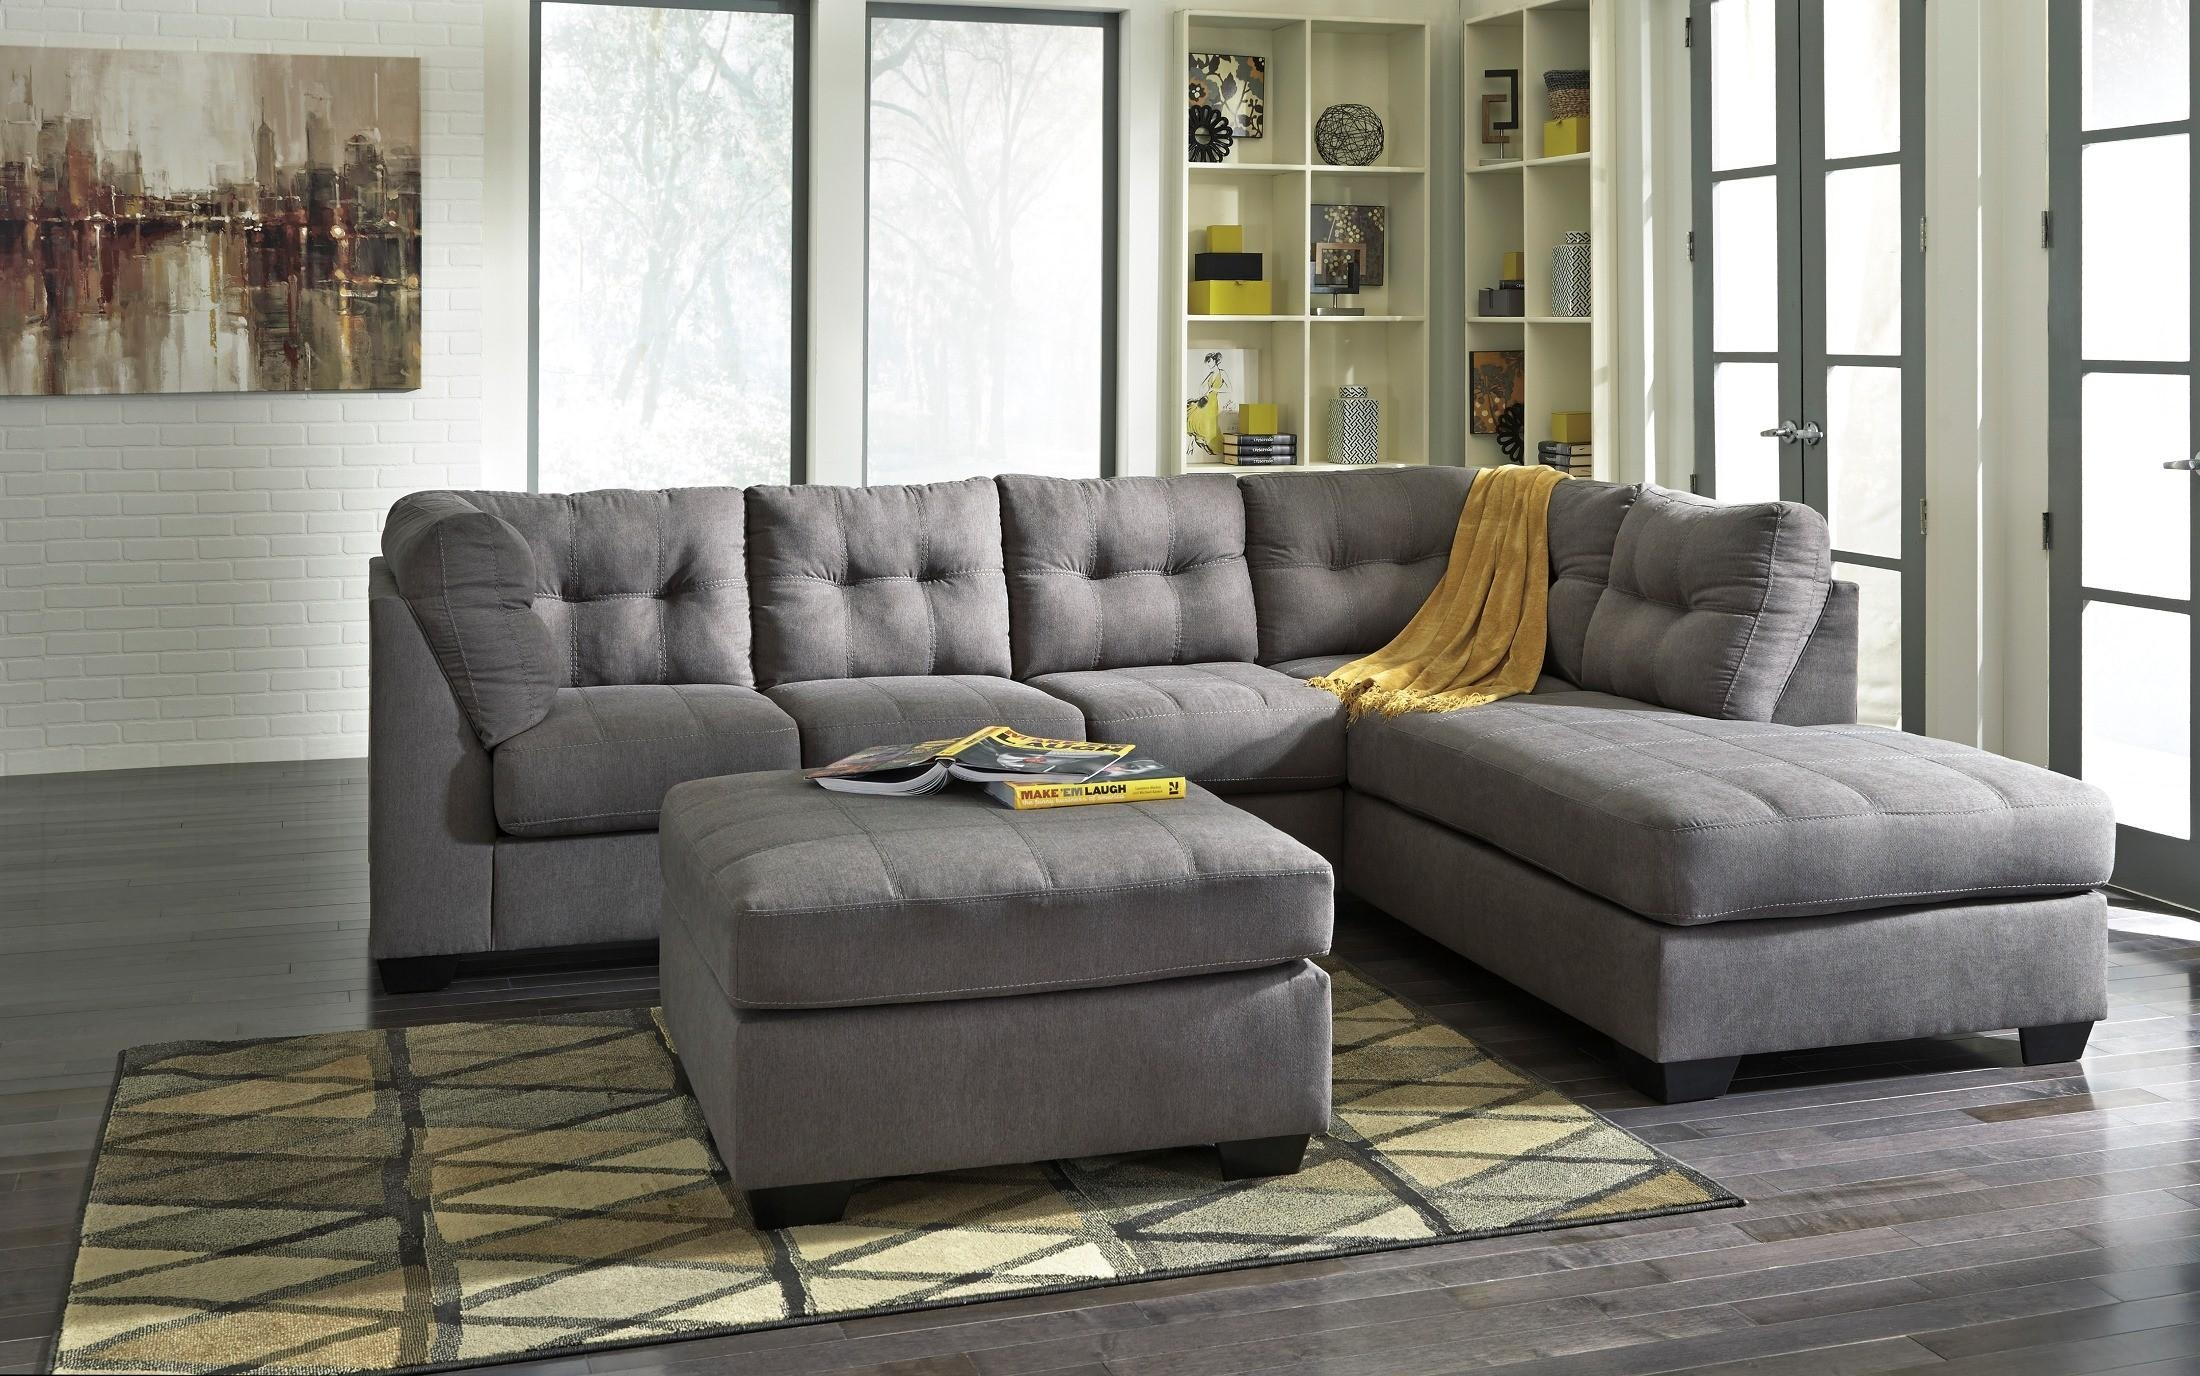 Maier Charcoal Raf Sectional From Ashley (45200 17 66) | Coleman For Ashley Sectional Sleeper (Image 7 of 15)